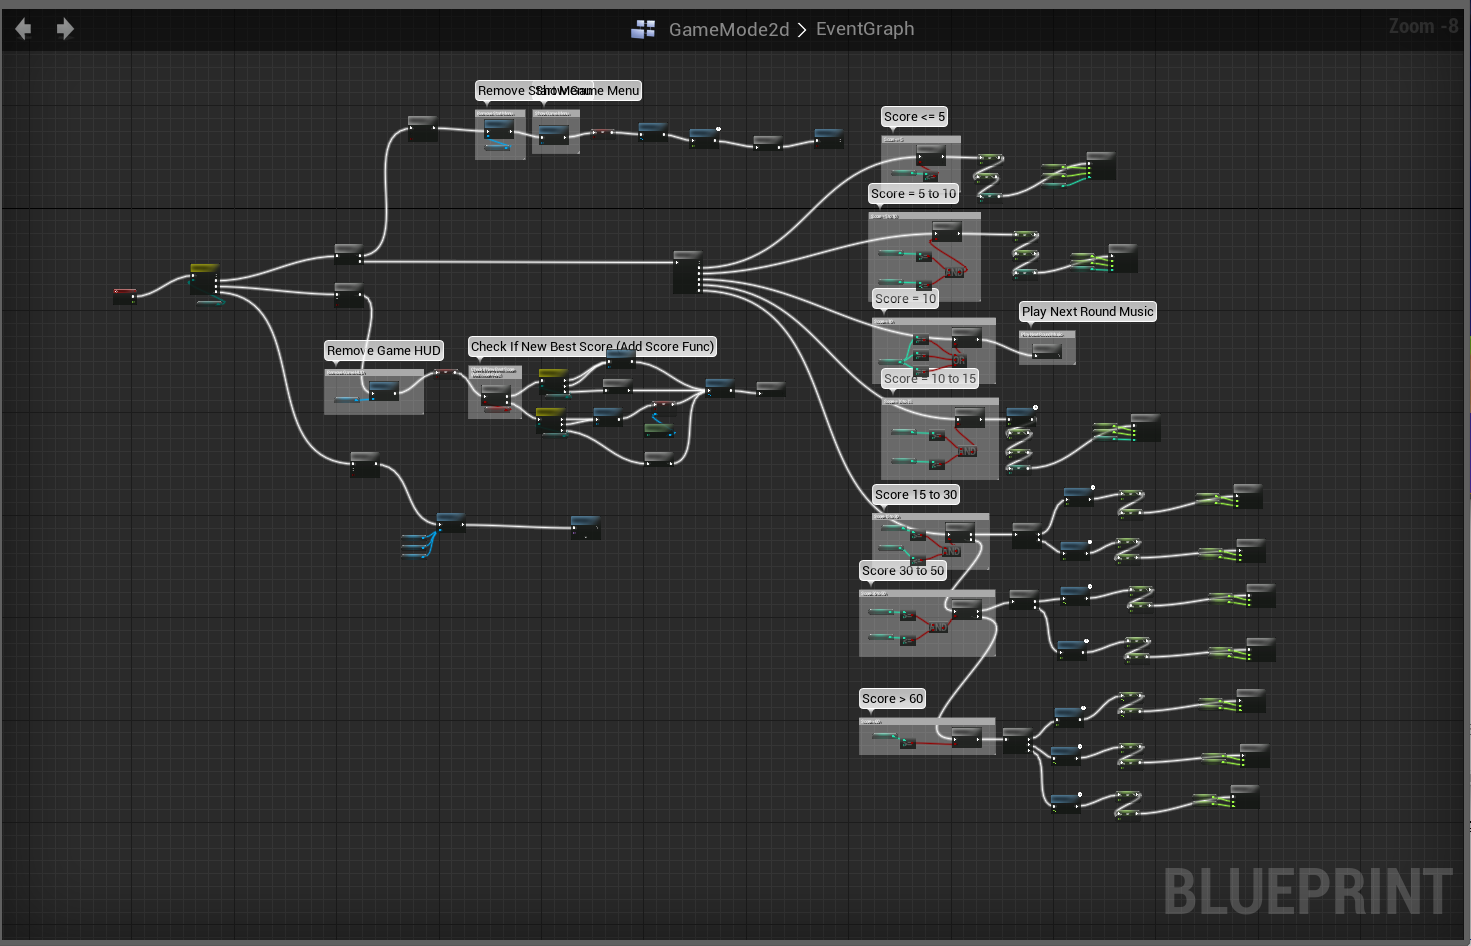 Gamasutra markus skupeikas blog from never coding before or blueprints blueprintgamemode malvernweather Choice Image